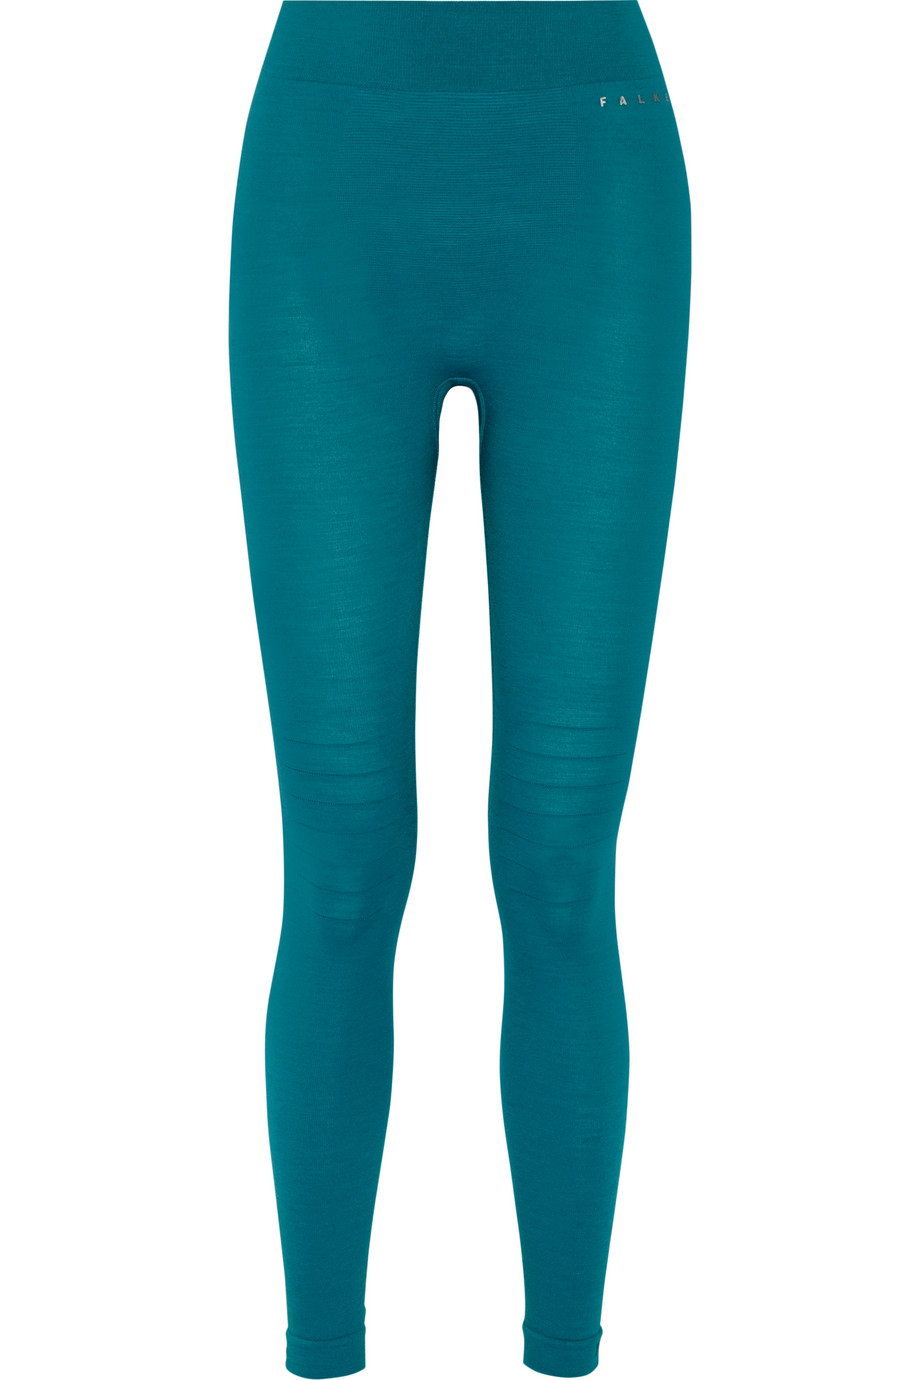 Stretch Wool-Blend Jersey Leggings, FALKE Ergonomic Sport System, Turquoise, Women's